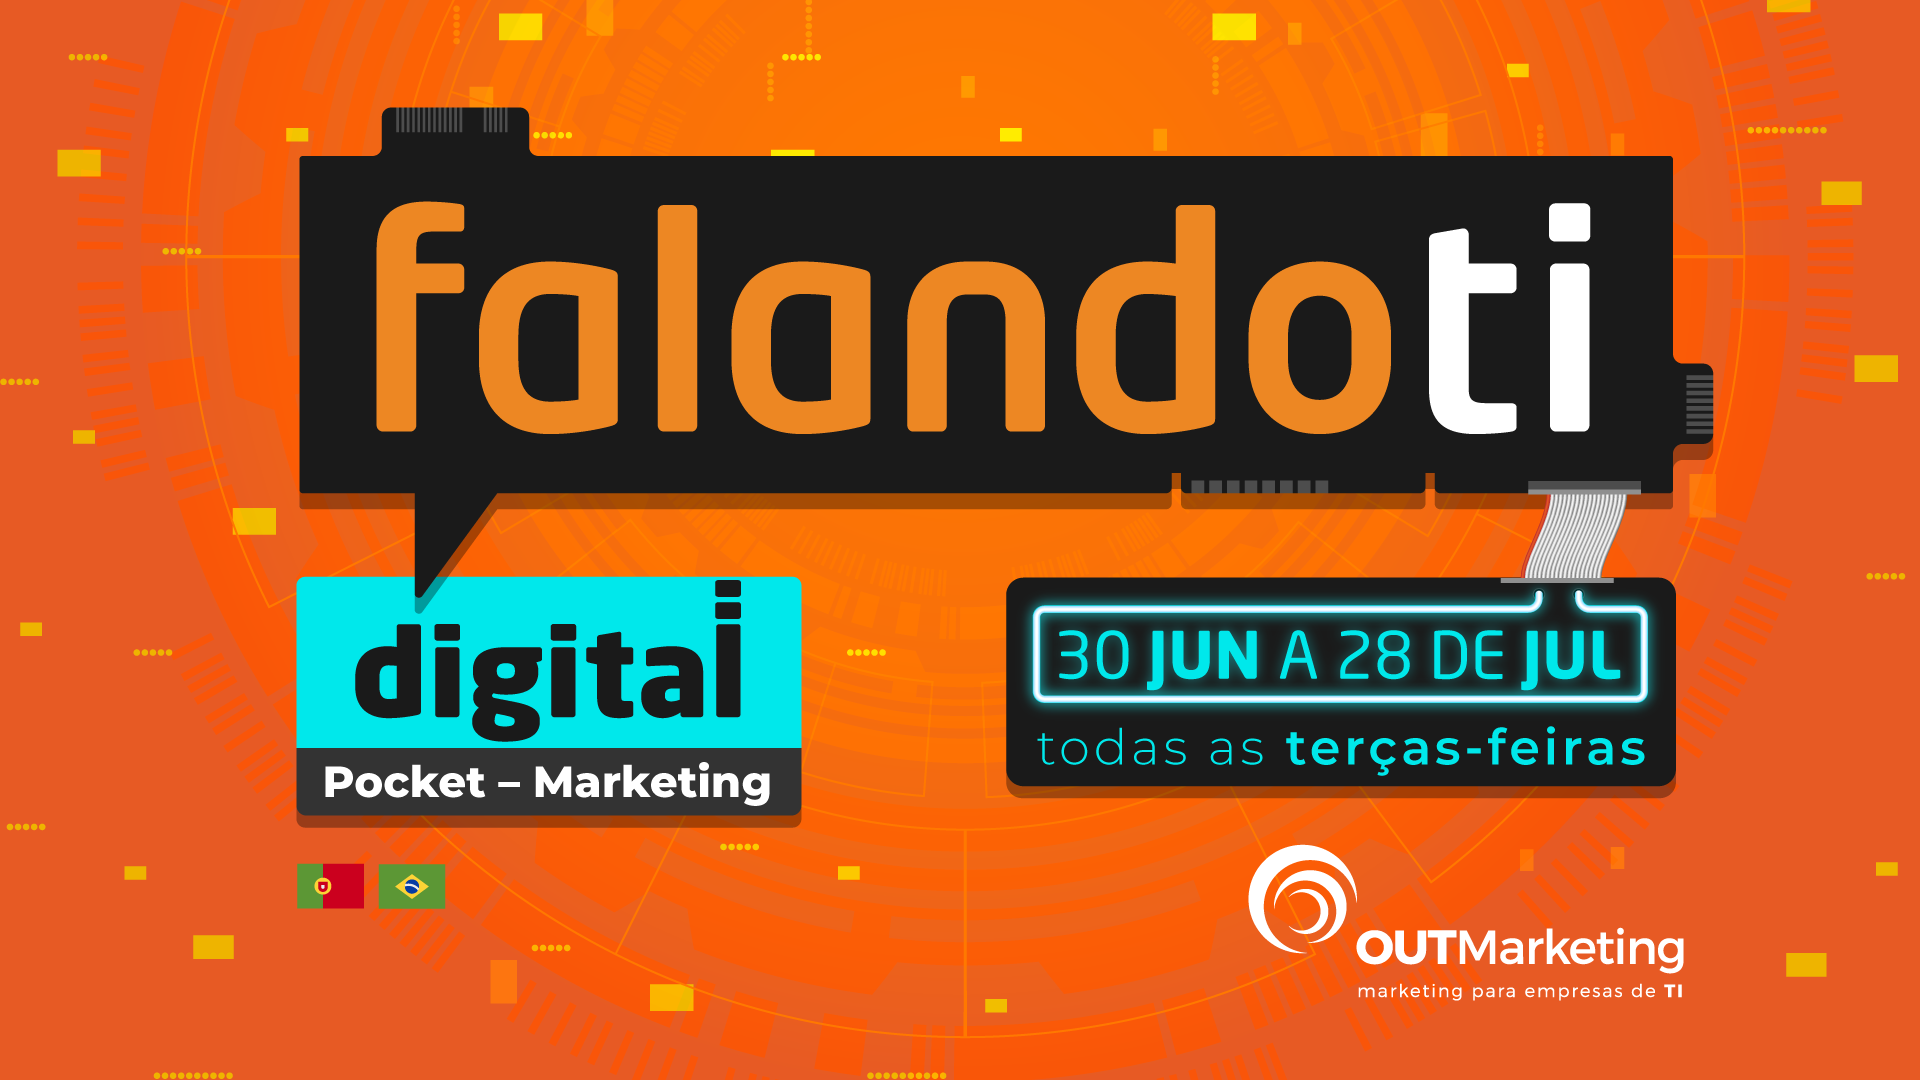 falandotidigitalpocketmarketing